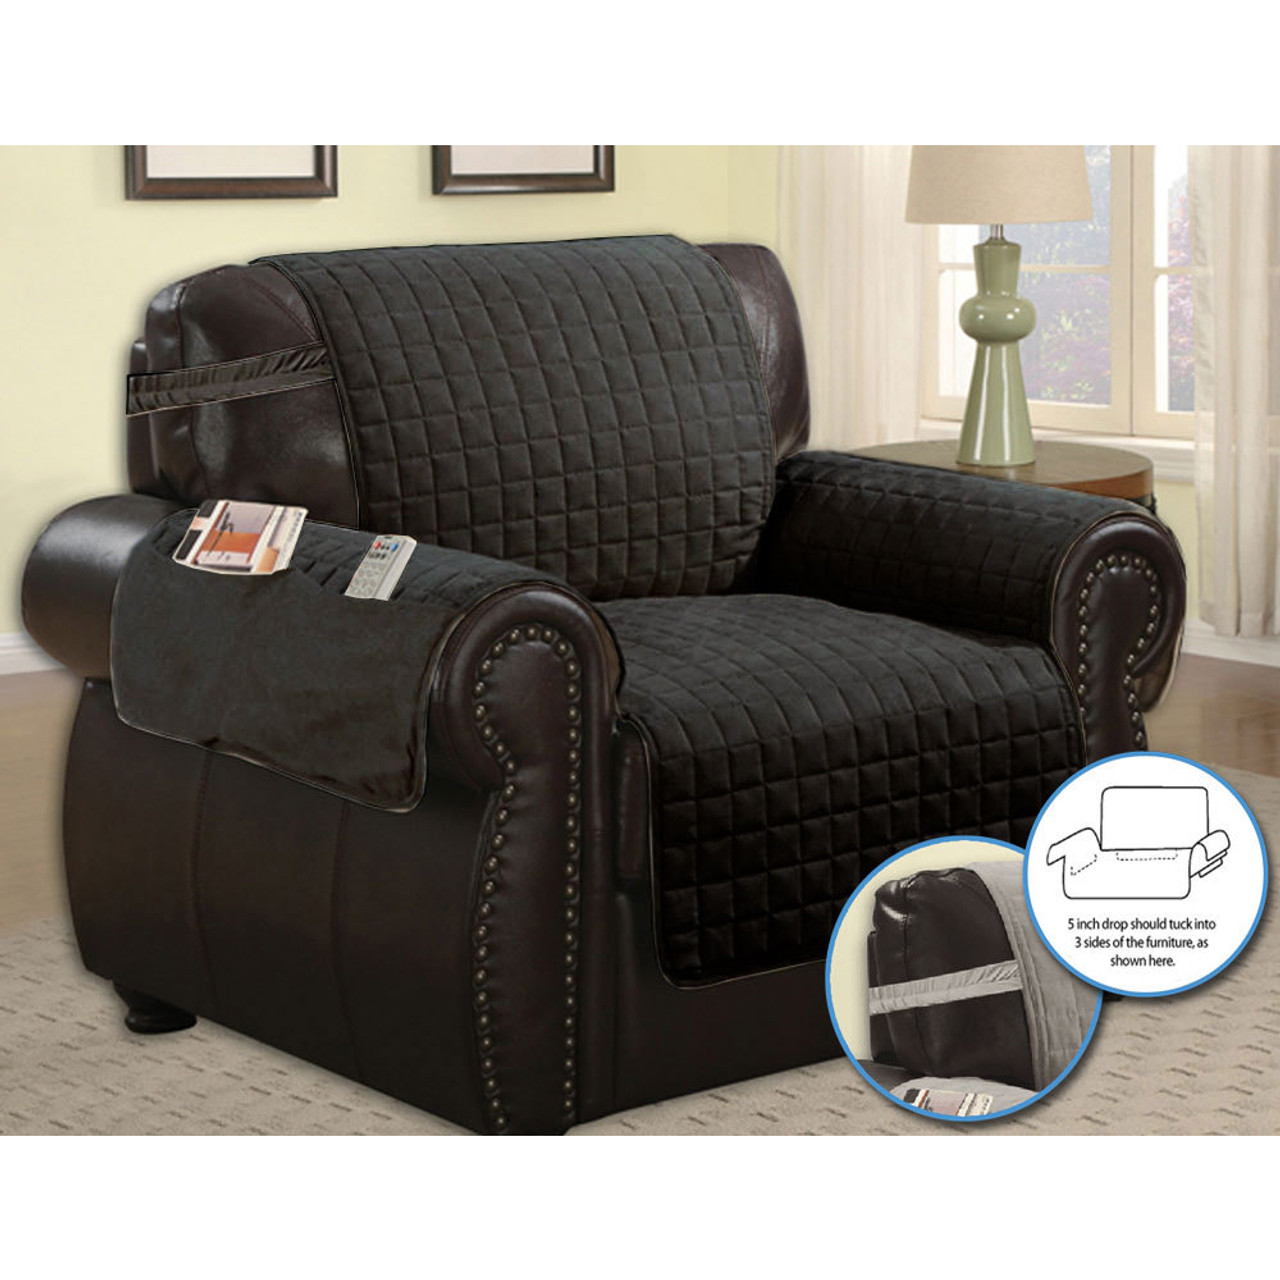 Quilted Microfiber Pet Dog Couch Sofa Furniture Protector Cover w// Tucks /& Strap